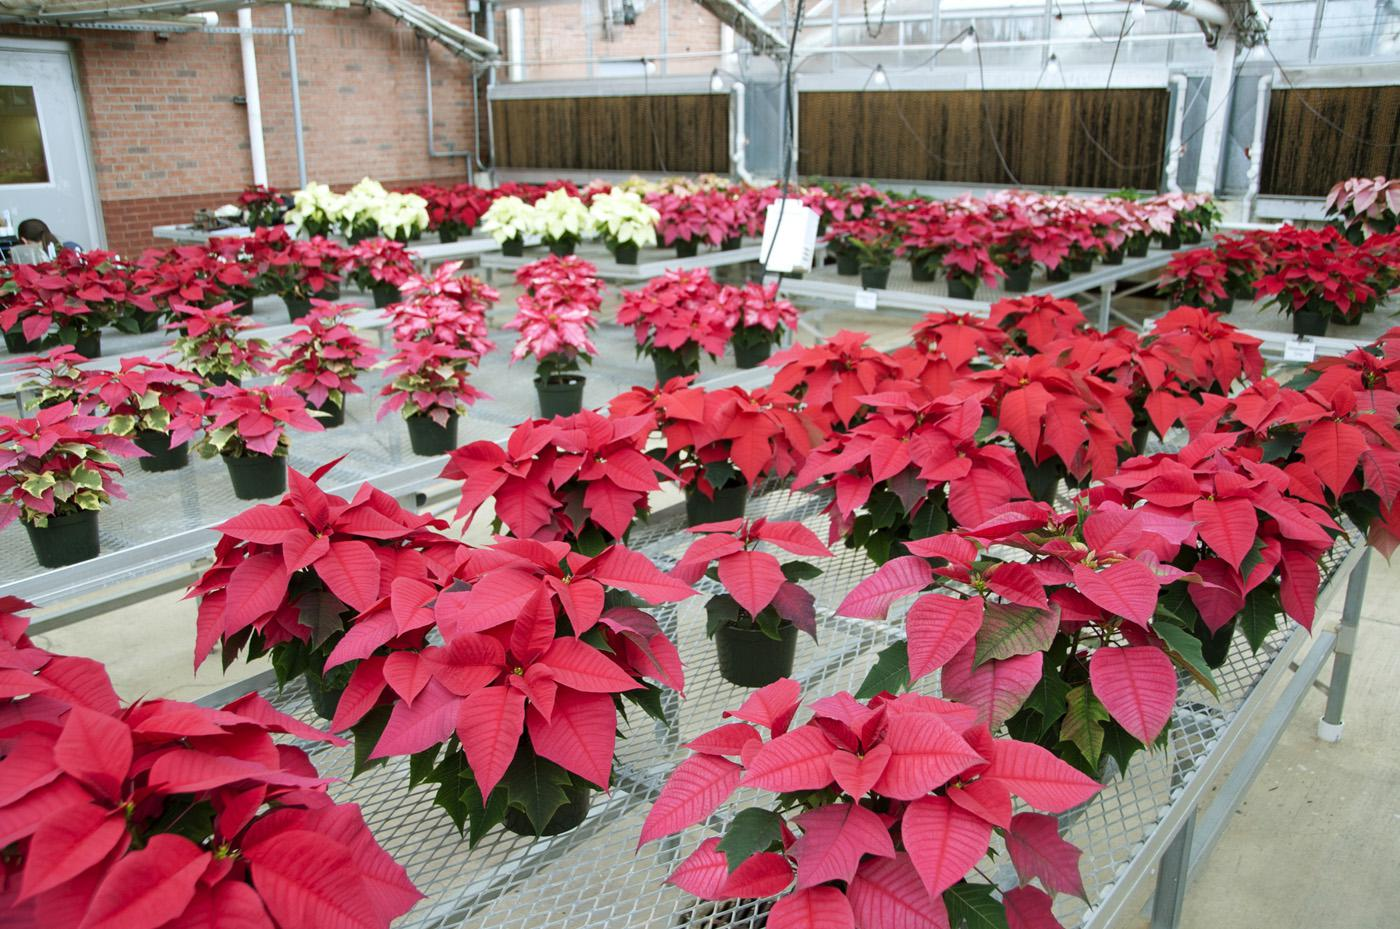 Msu Research Benefits Poinsettia Producers Mississippi State